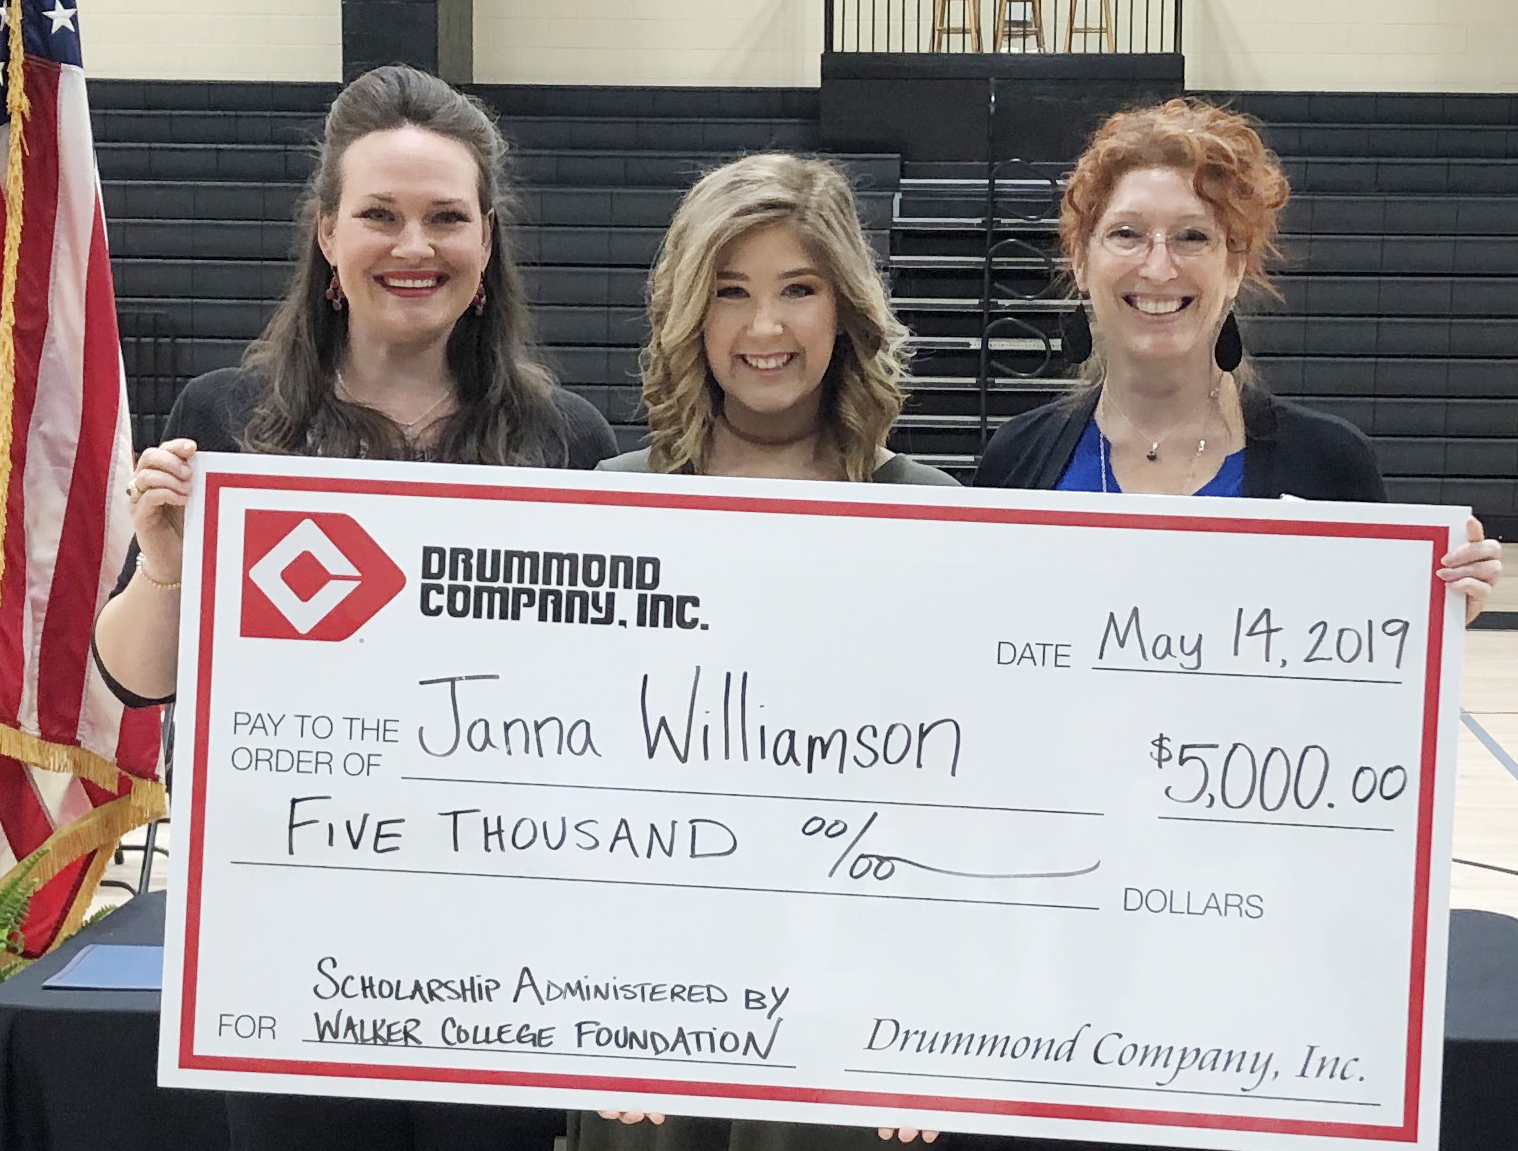 Janna Williamson (ctr) is awarded the Drummond Company scholarship by Drummond Company's Krystal Drummond (lt) and WCF's Holly Trawick (rt) at the Cleveland High School senior honors program.